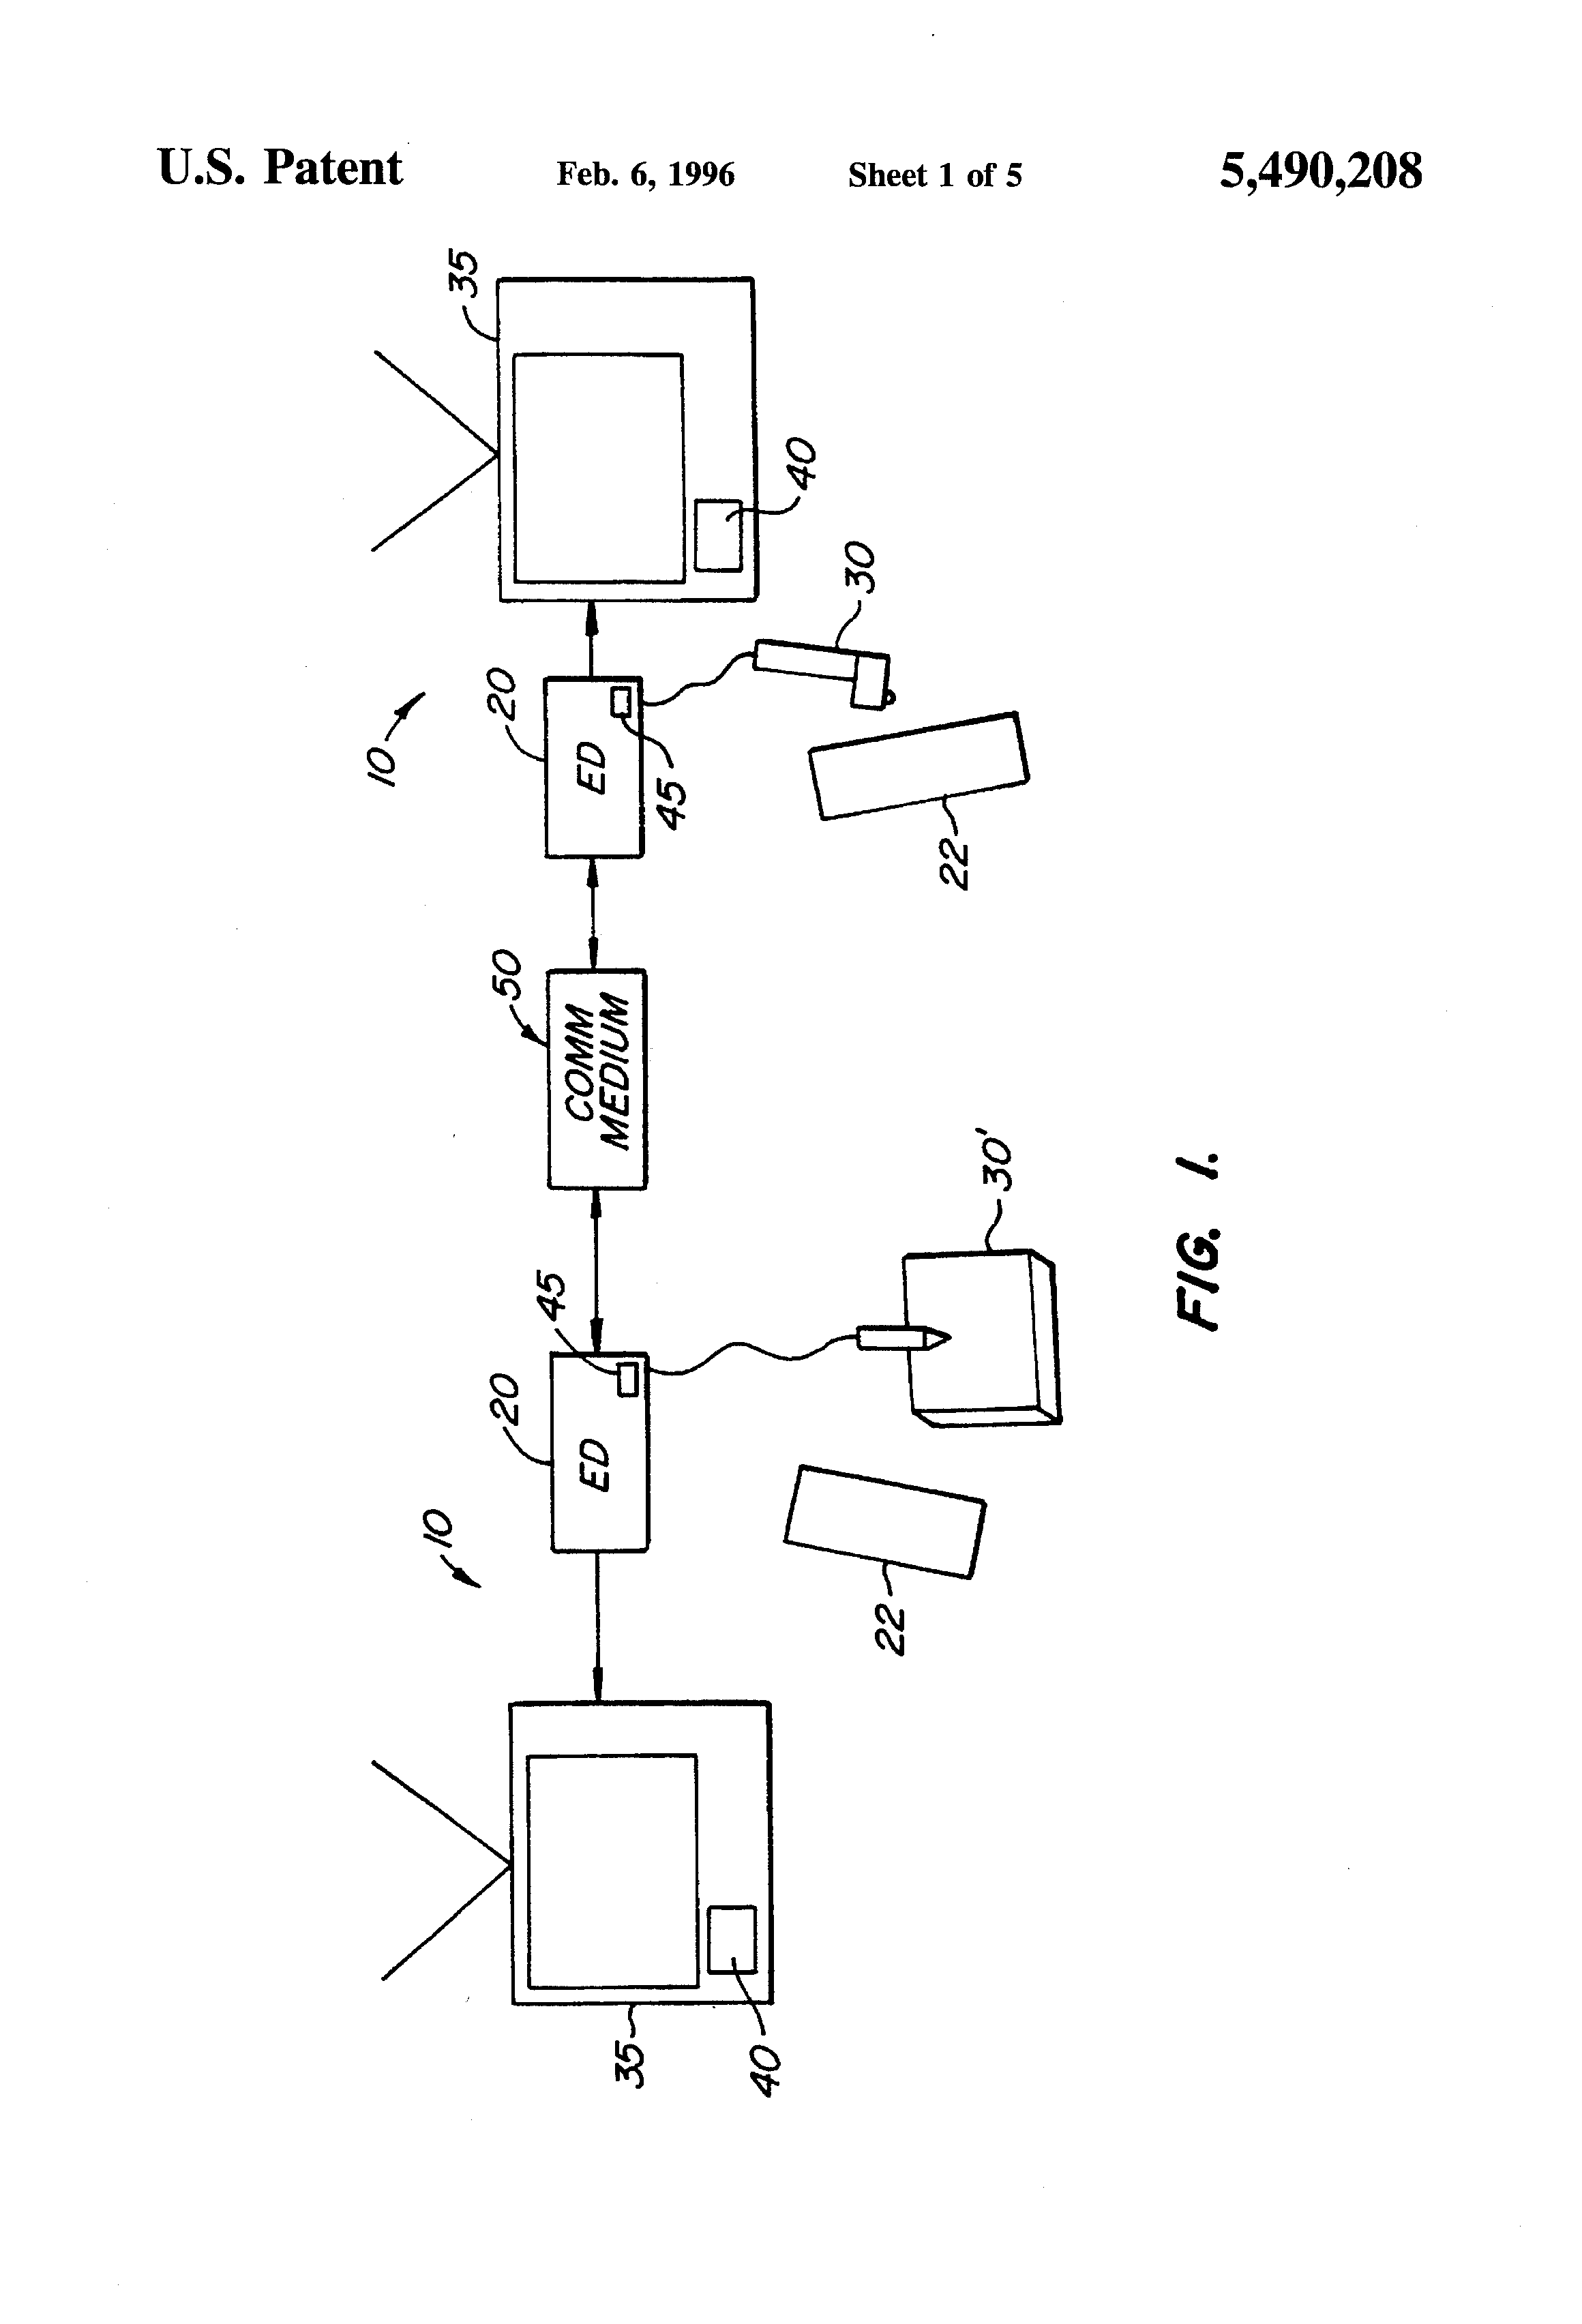 Home Security System Circuit Diagram For Student Wiring Diagrams Hho Generator Patent Us5490208 Apparatus And Method Voice Mode Data